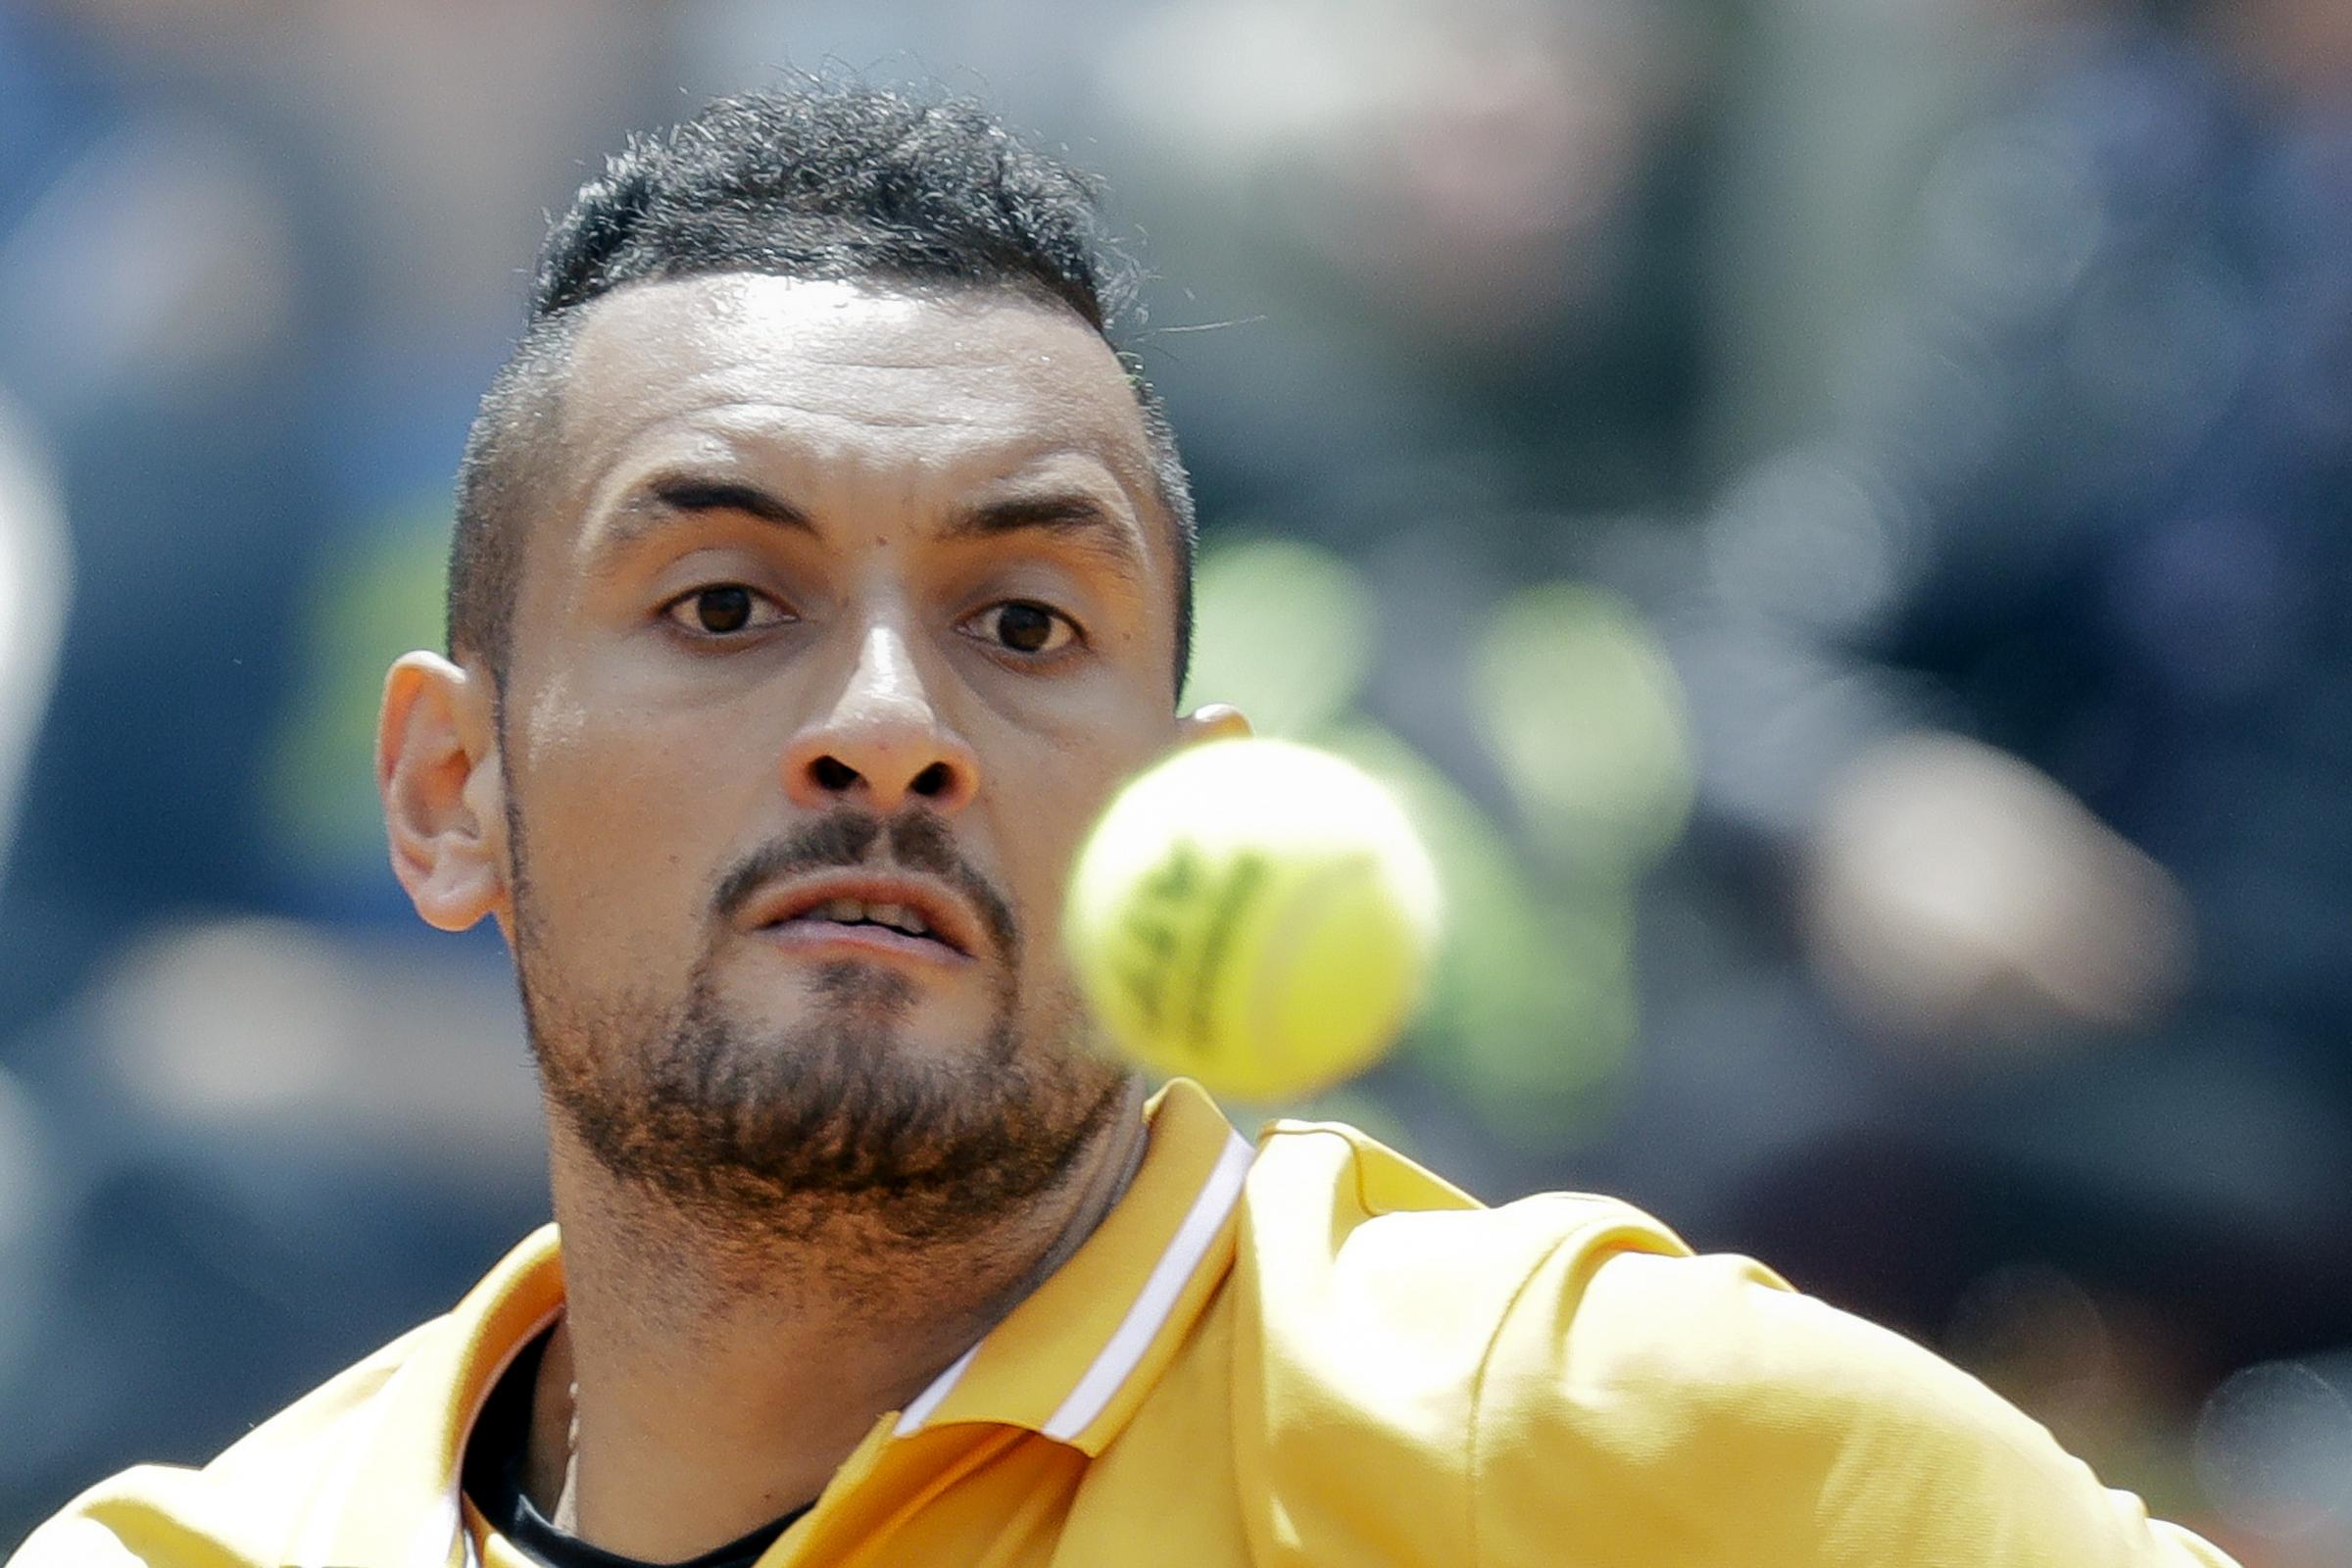 Nick Kyrgios lost his cool spectacularly in Rome